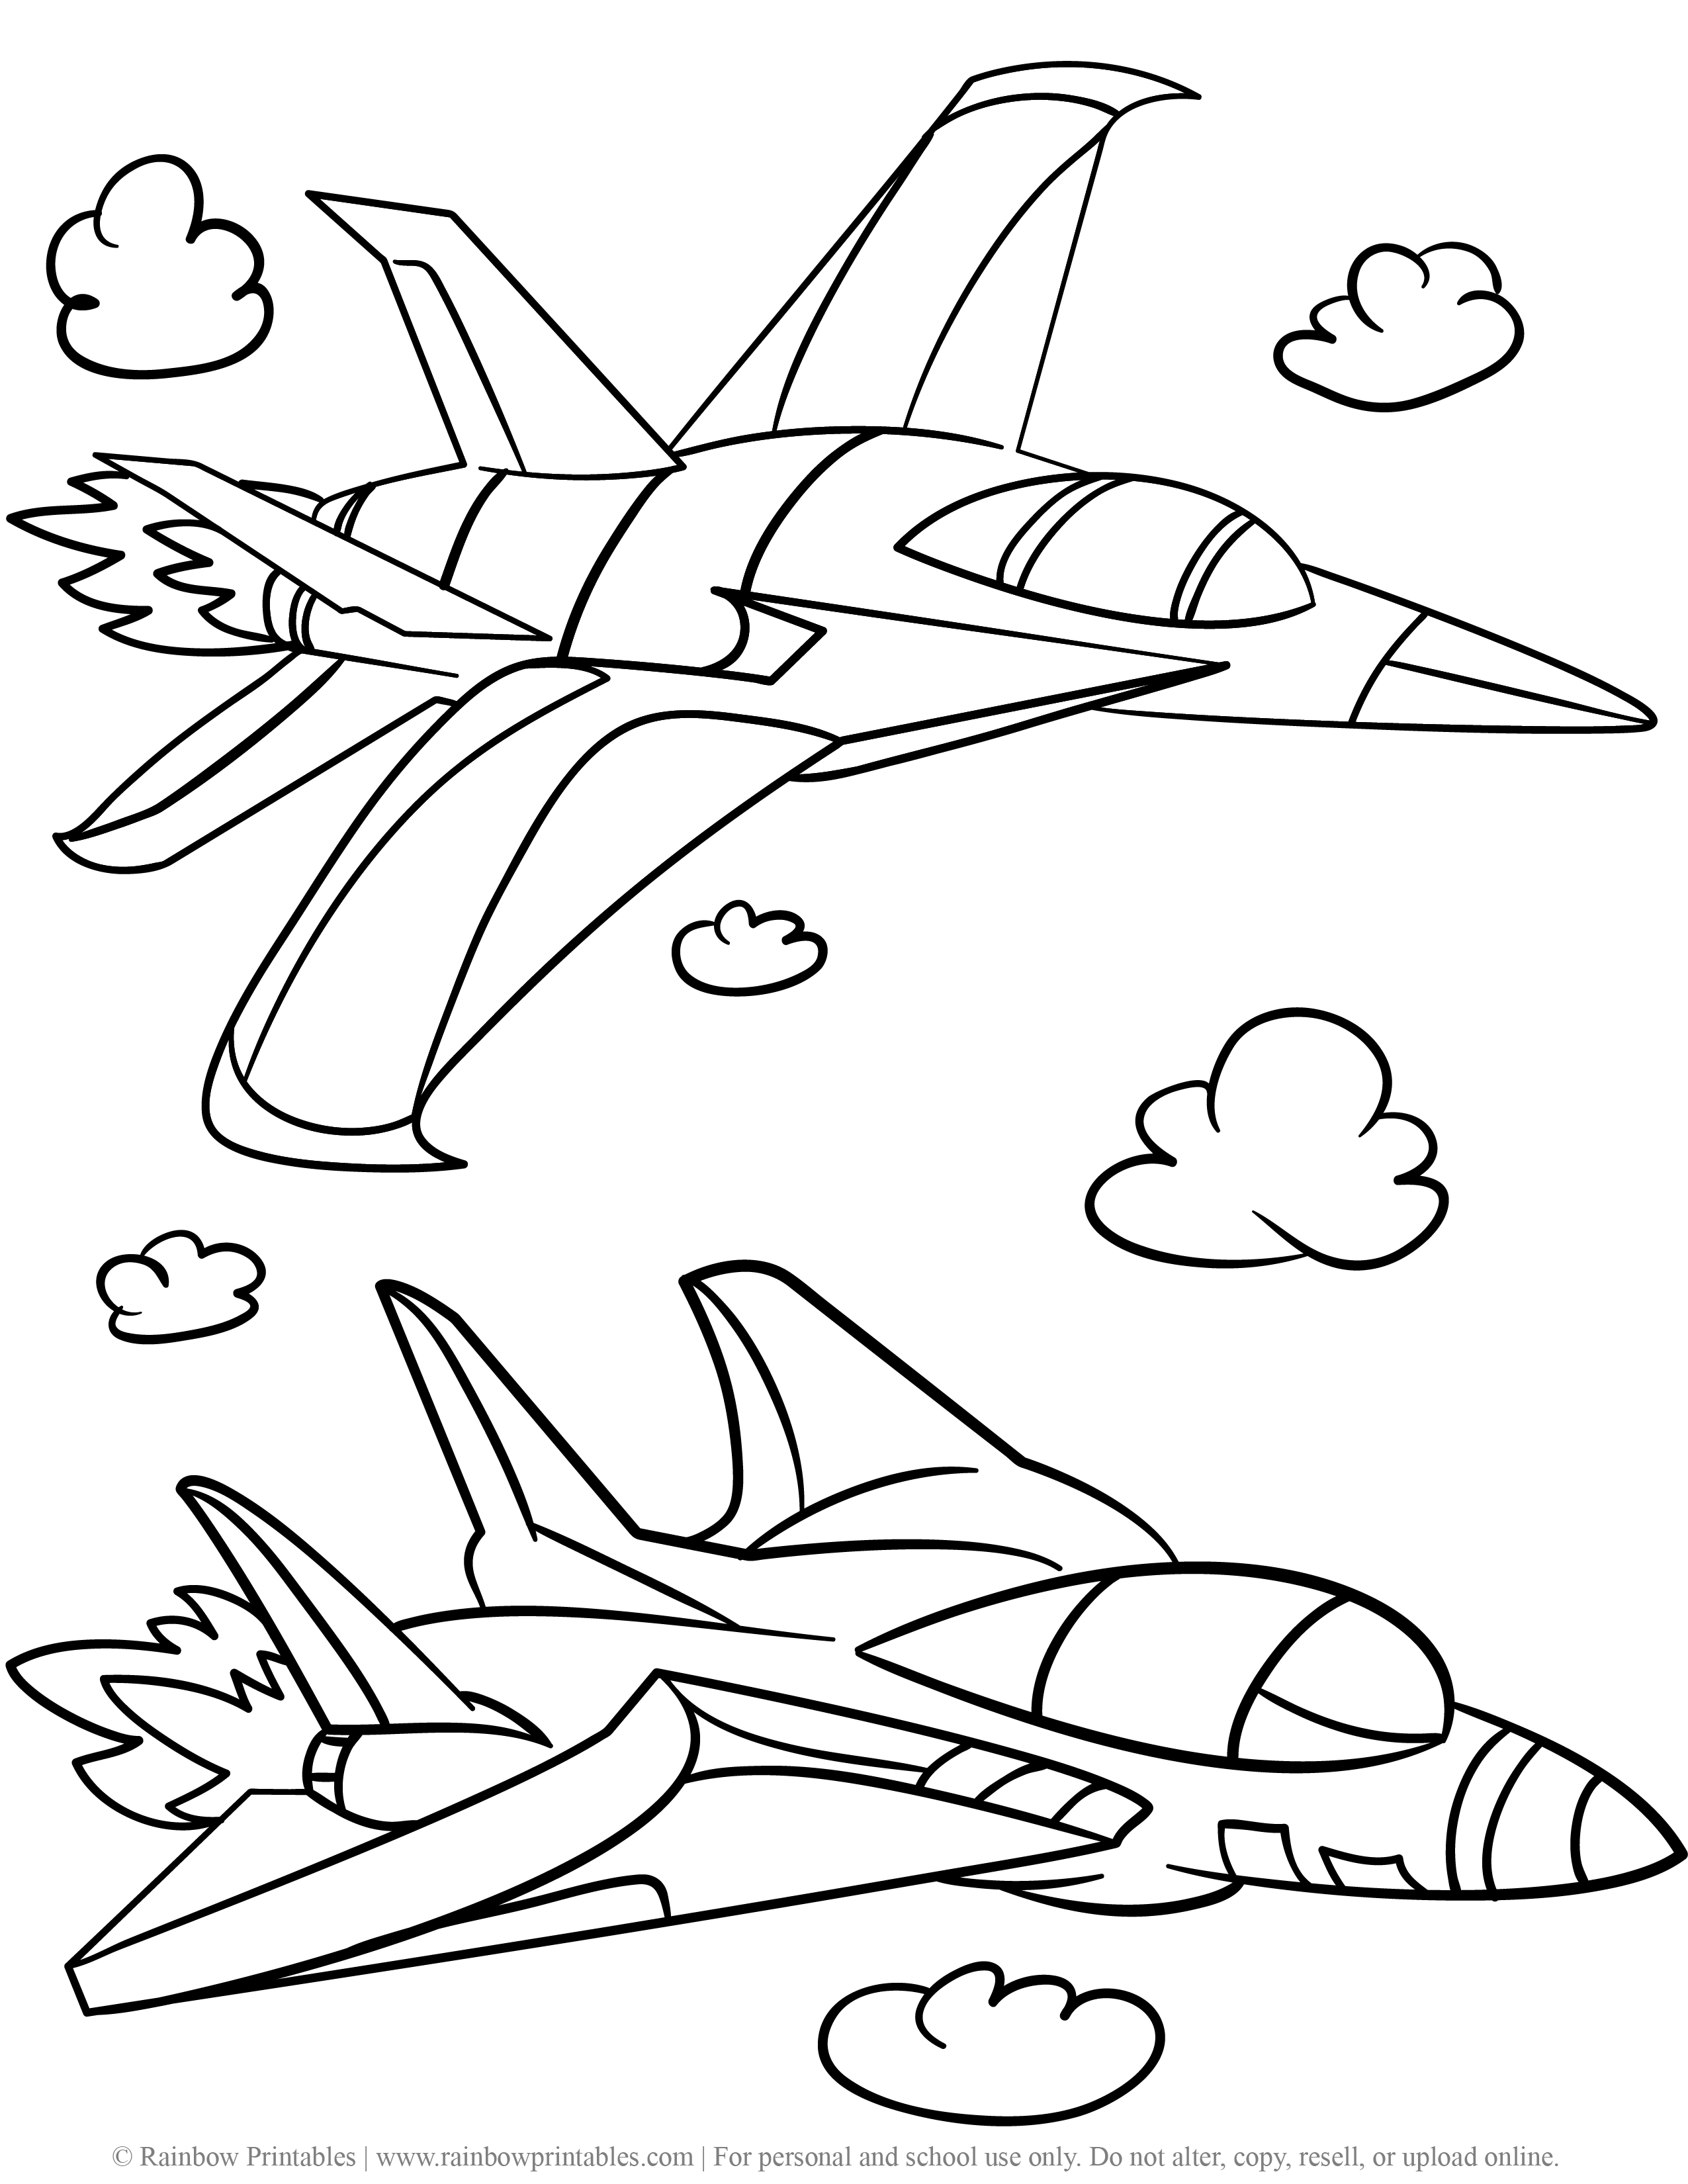 Military Bomber Jet Plane Stealth US Ship Free Coloring Pages for Kids Drawing Activities Line Art Illustration-03